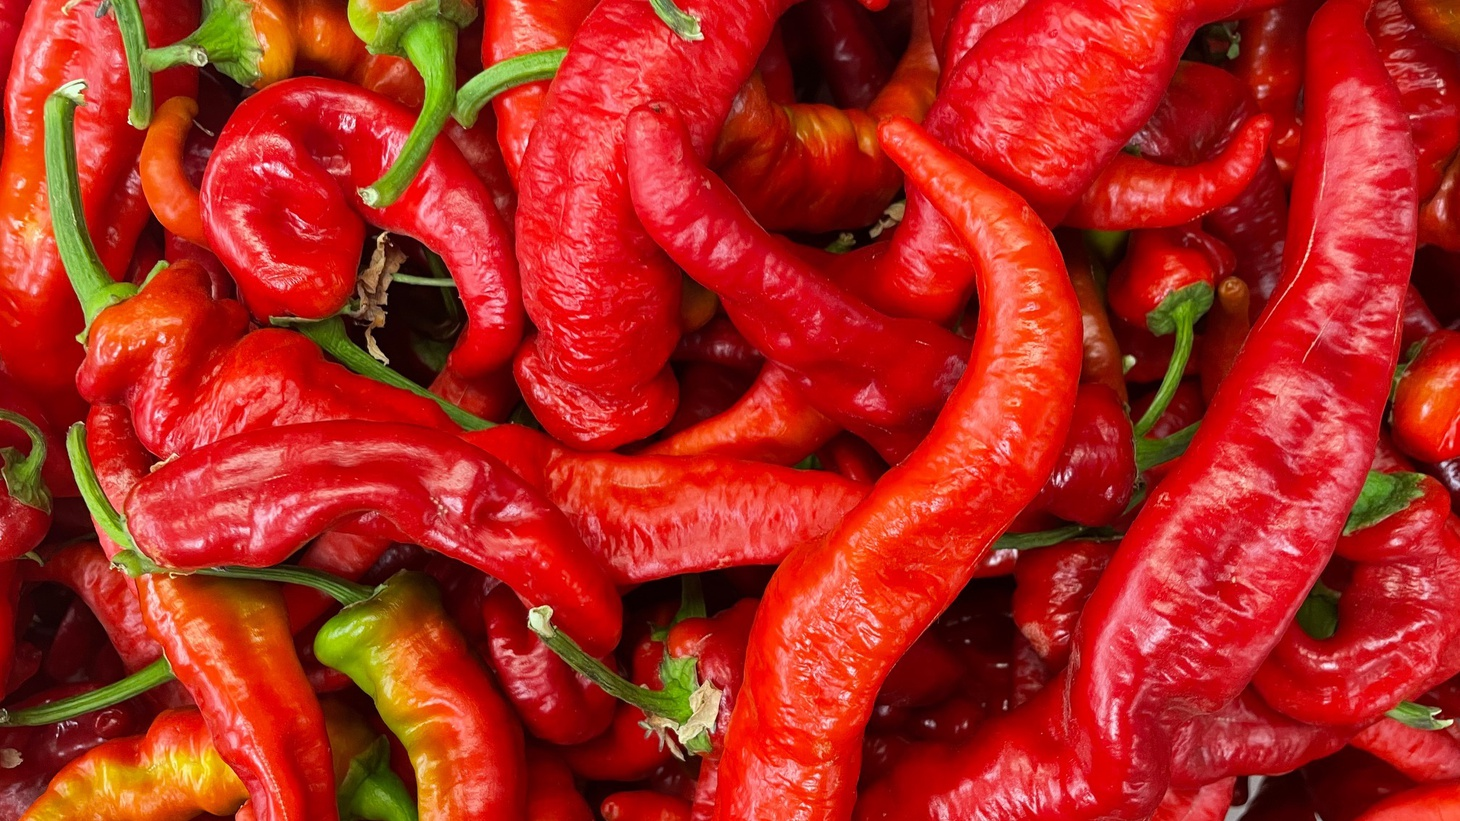 Market correspondent Gillian Ferguson discovers how Executive Chef Travis Passerotti is using sweet peppers at the Tasting Kitchen, including the Jimmy Nardello variety.